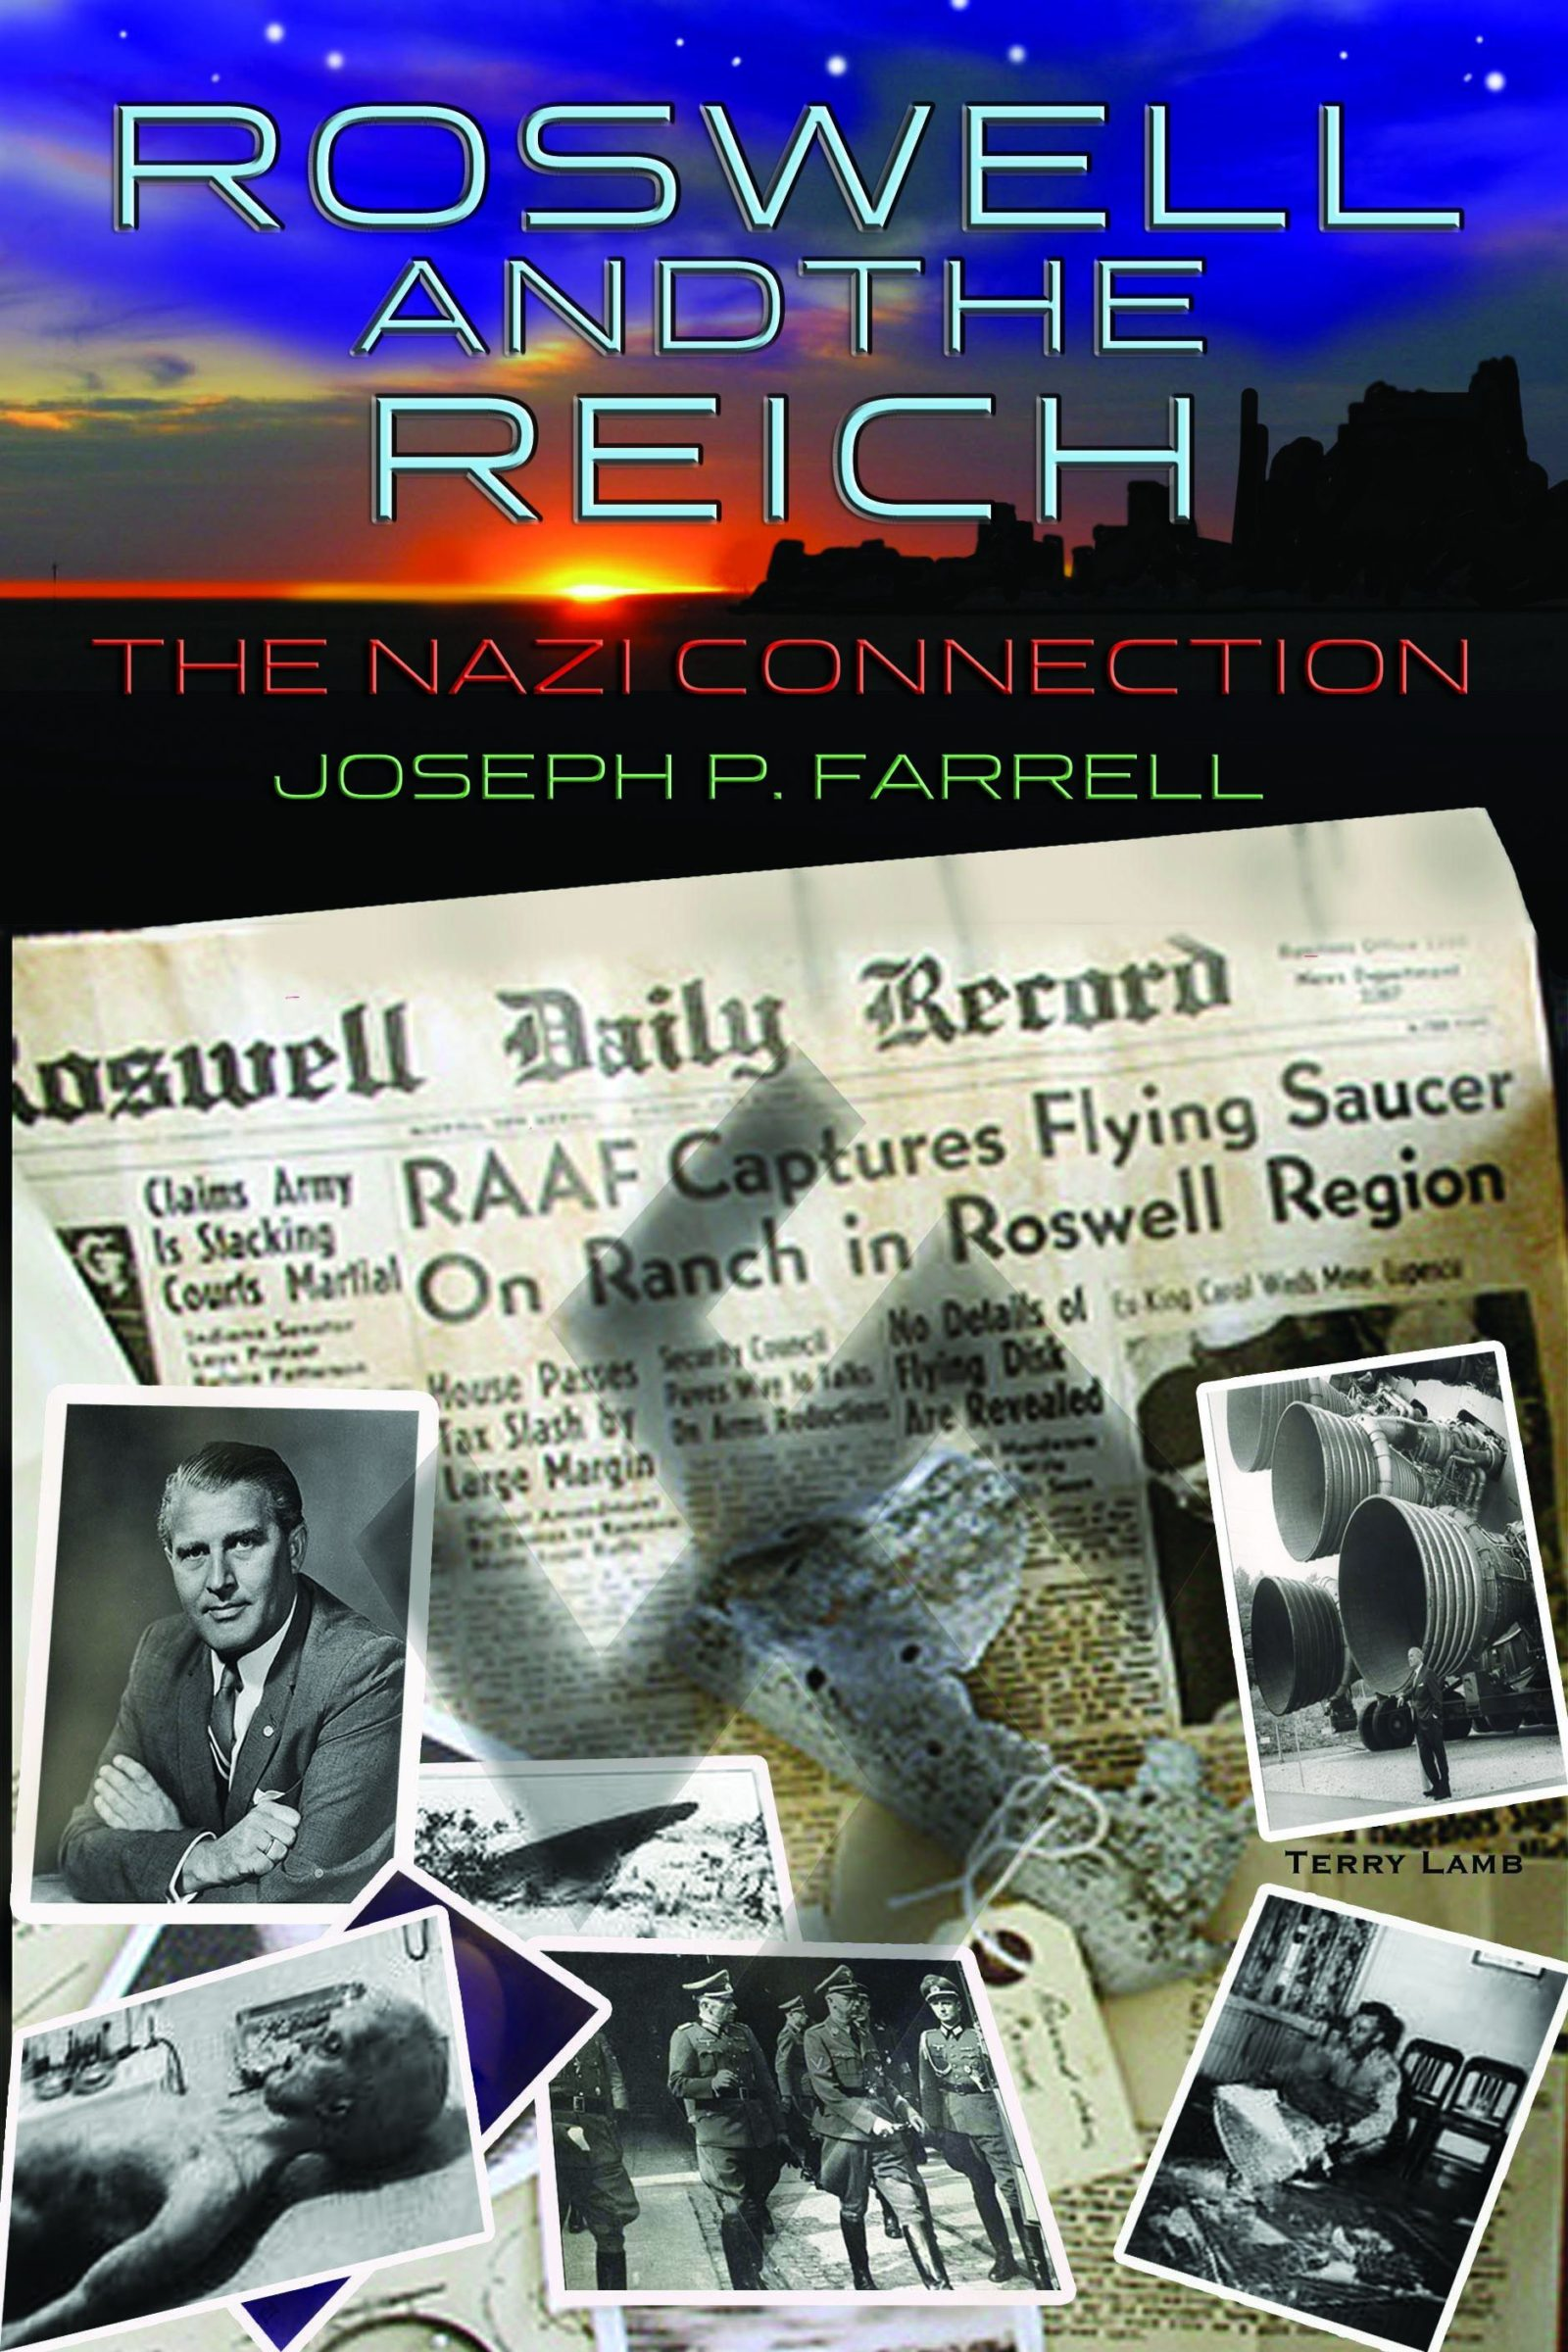 ROSWELL AND THE REICH AND OTHER BUSINESS